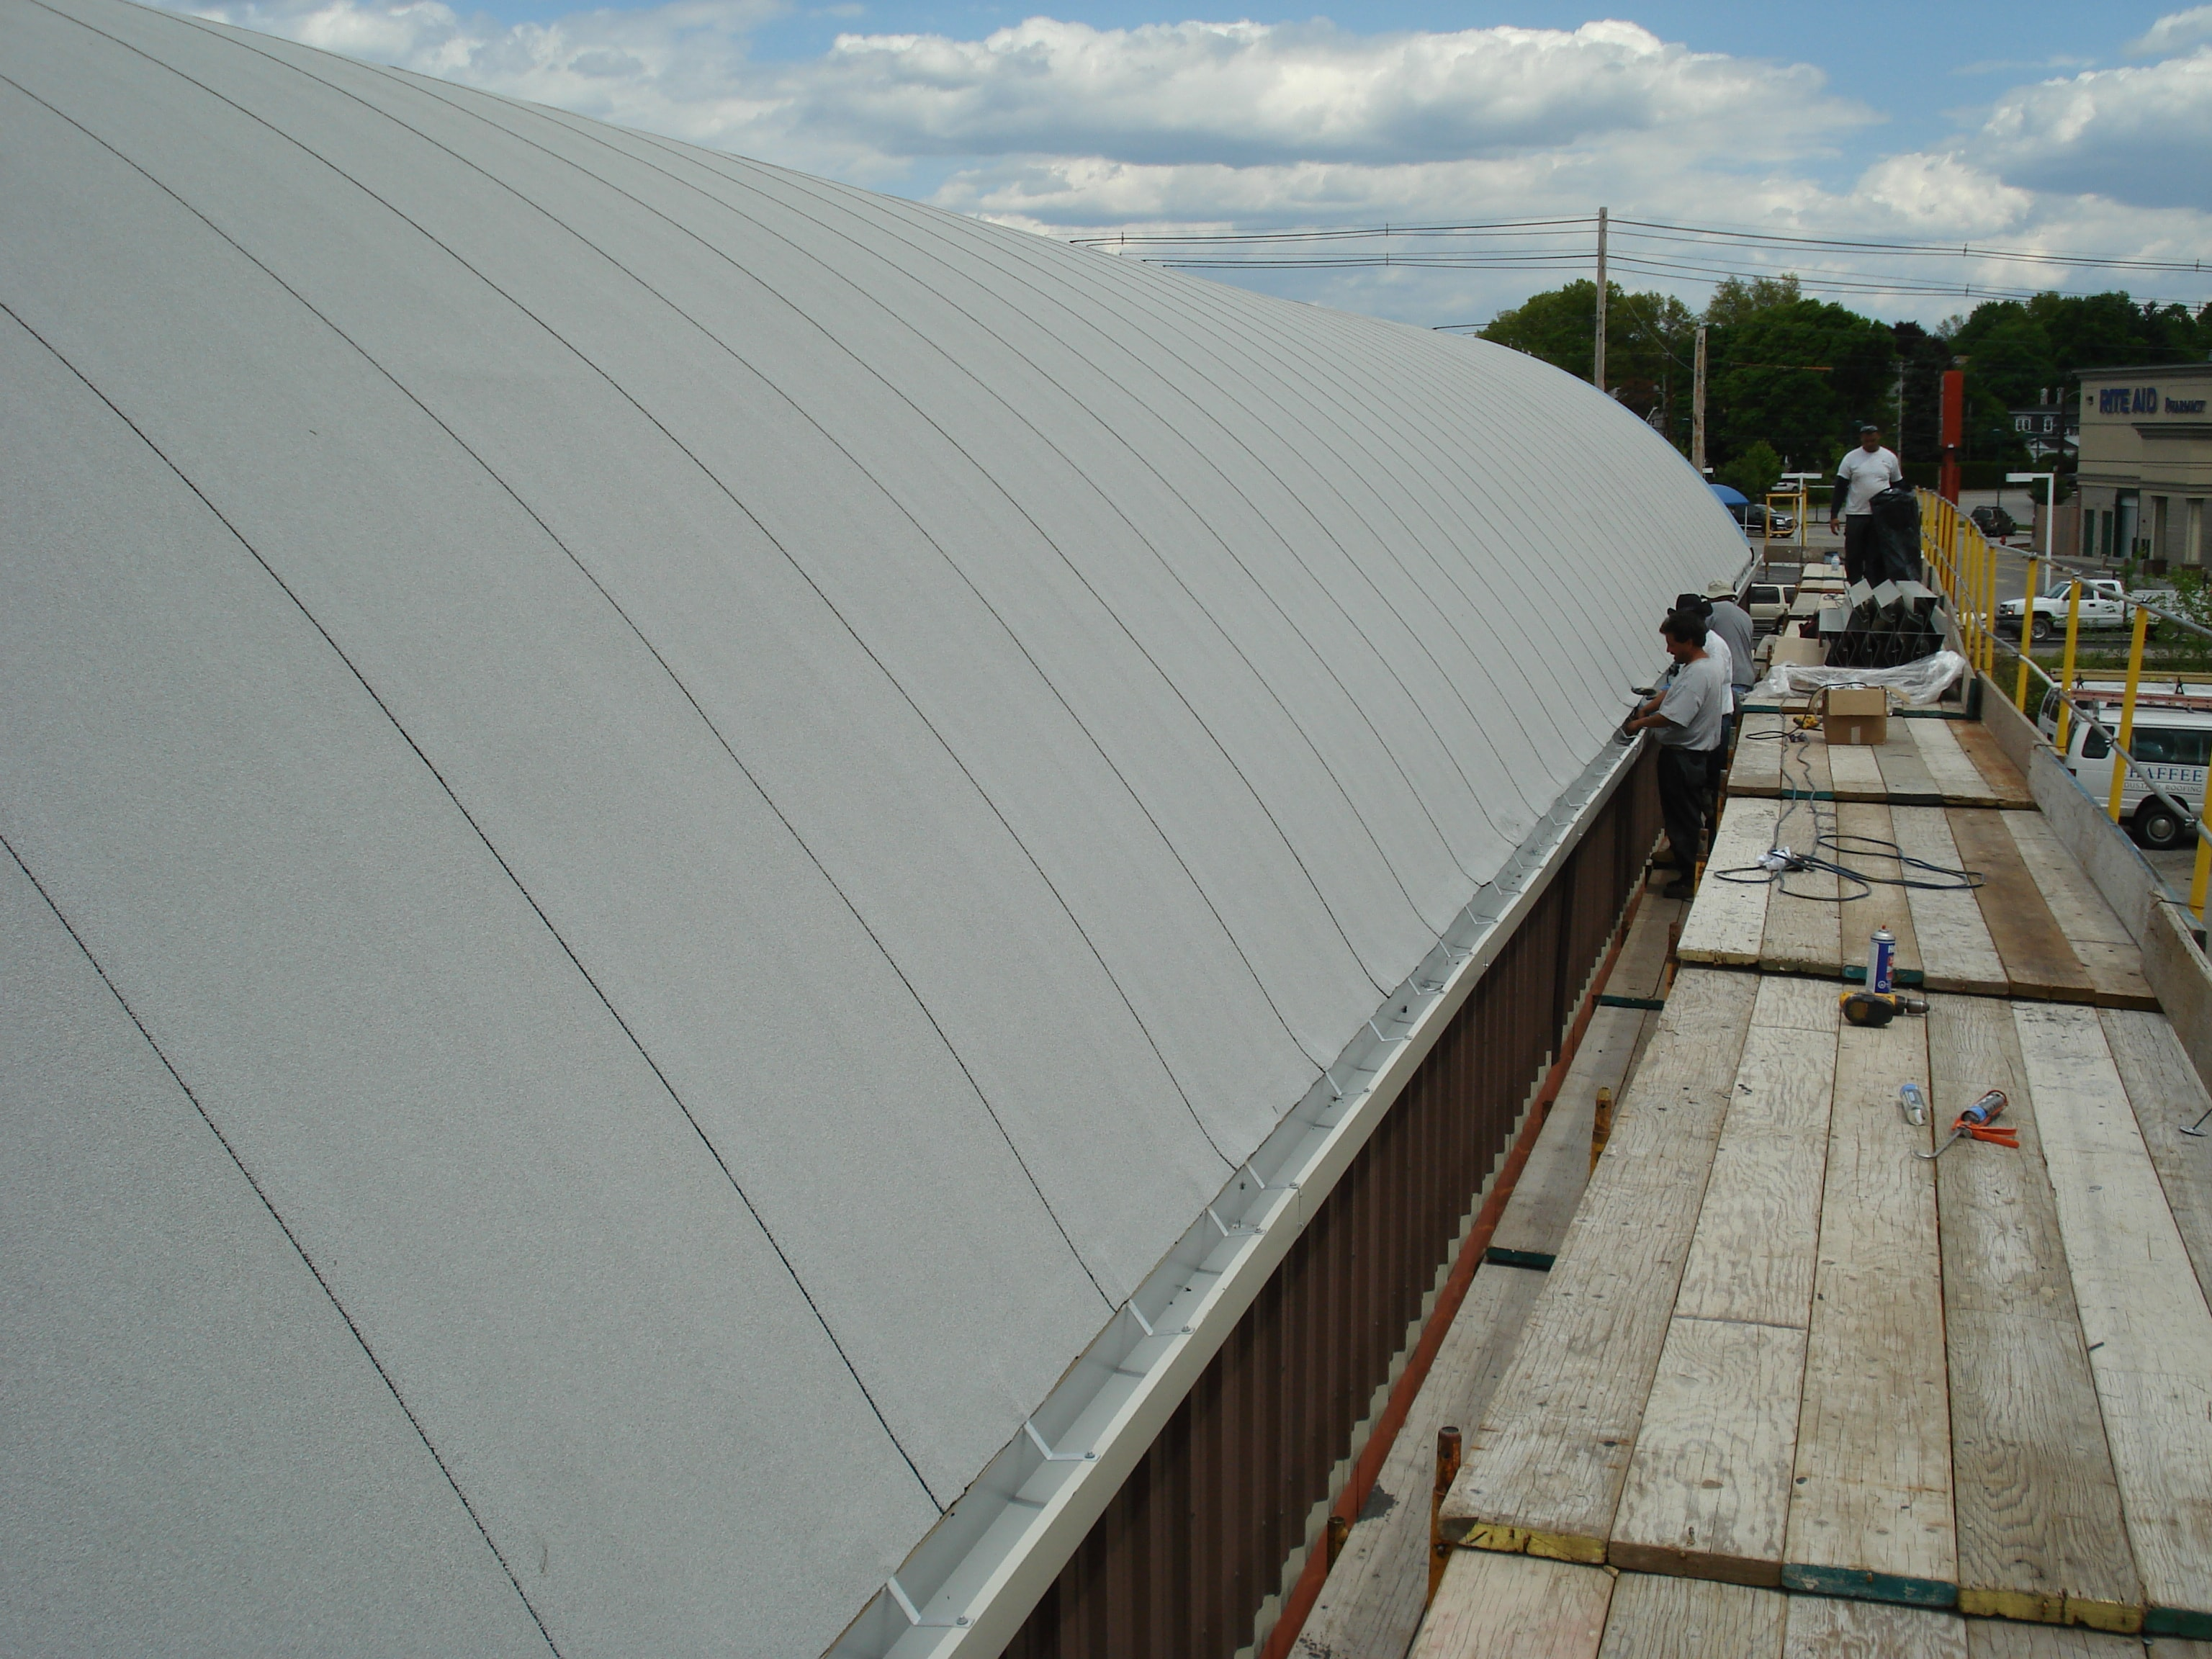 Modified Bitumen Roof Chaffee Industrial Roofing